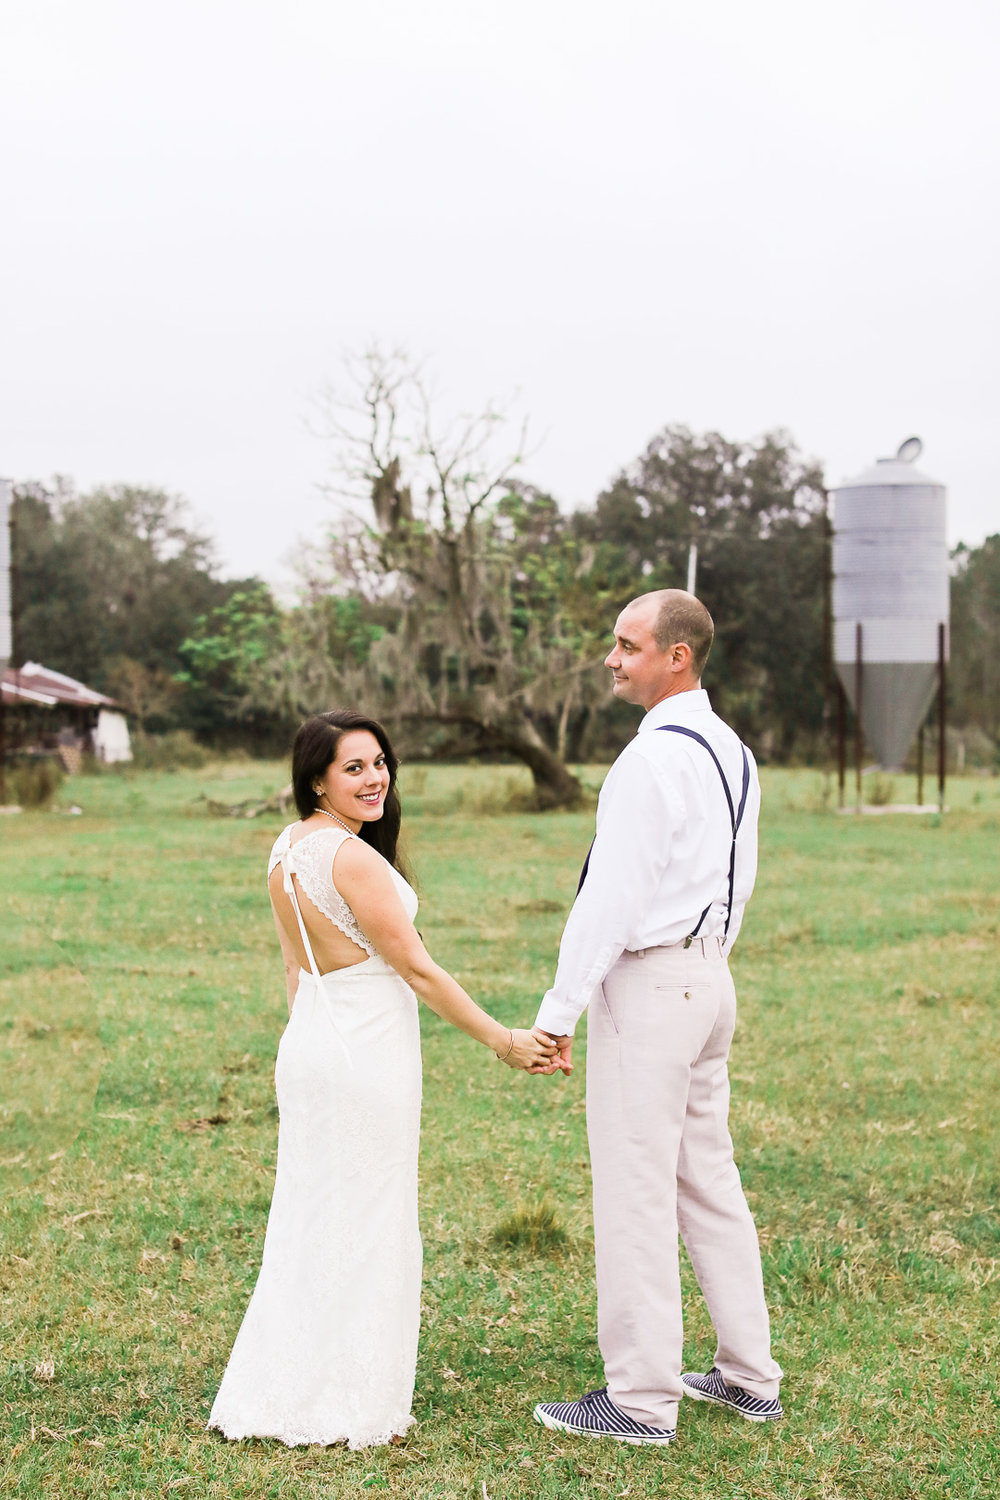 williams_family_newlywed-183.jpg